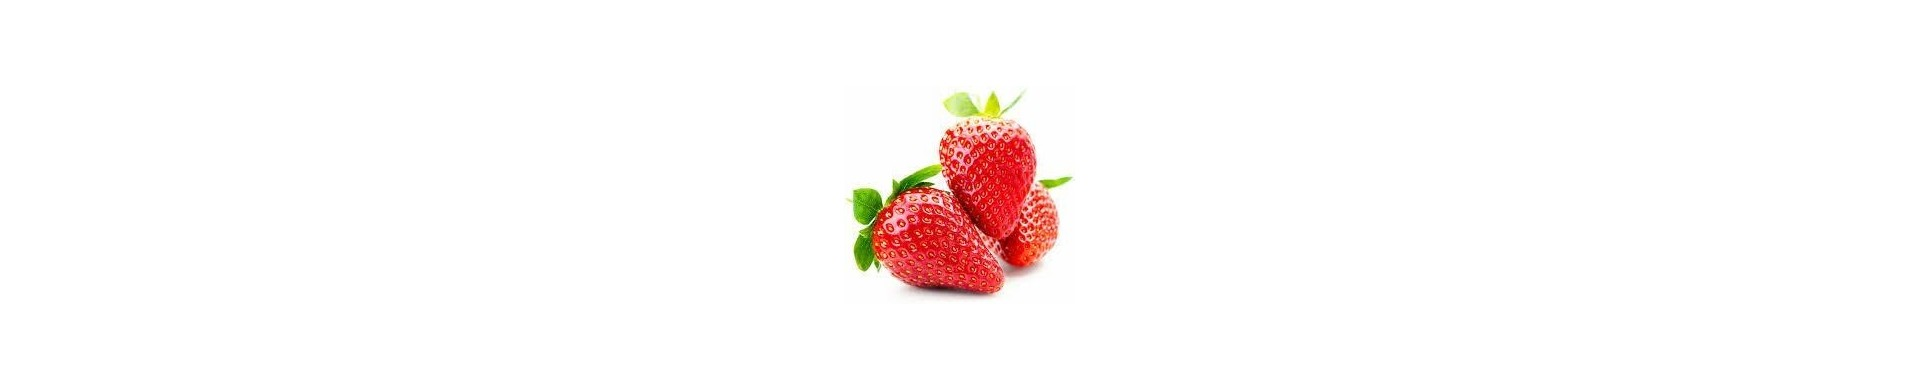 Plant strawberries - Buy strawberry plants